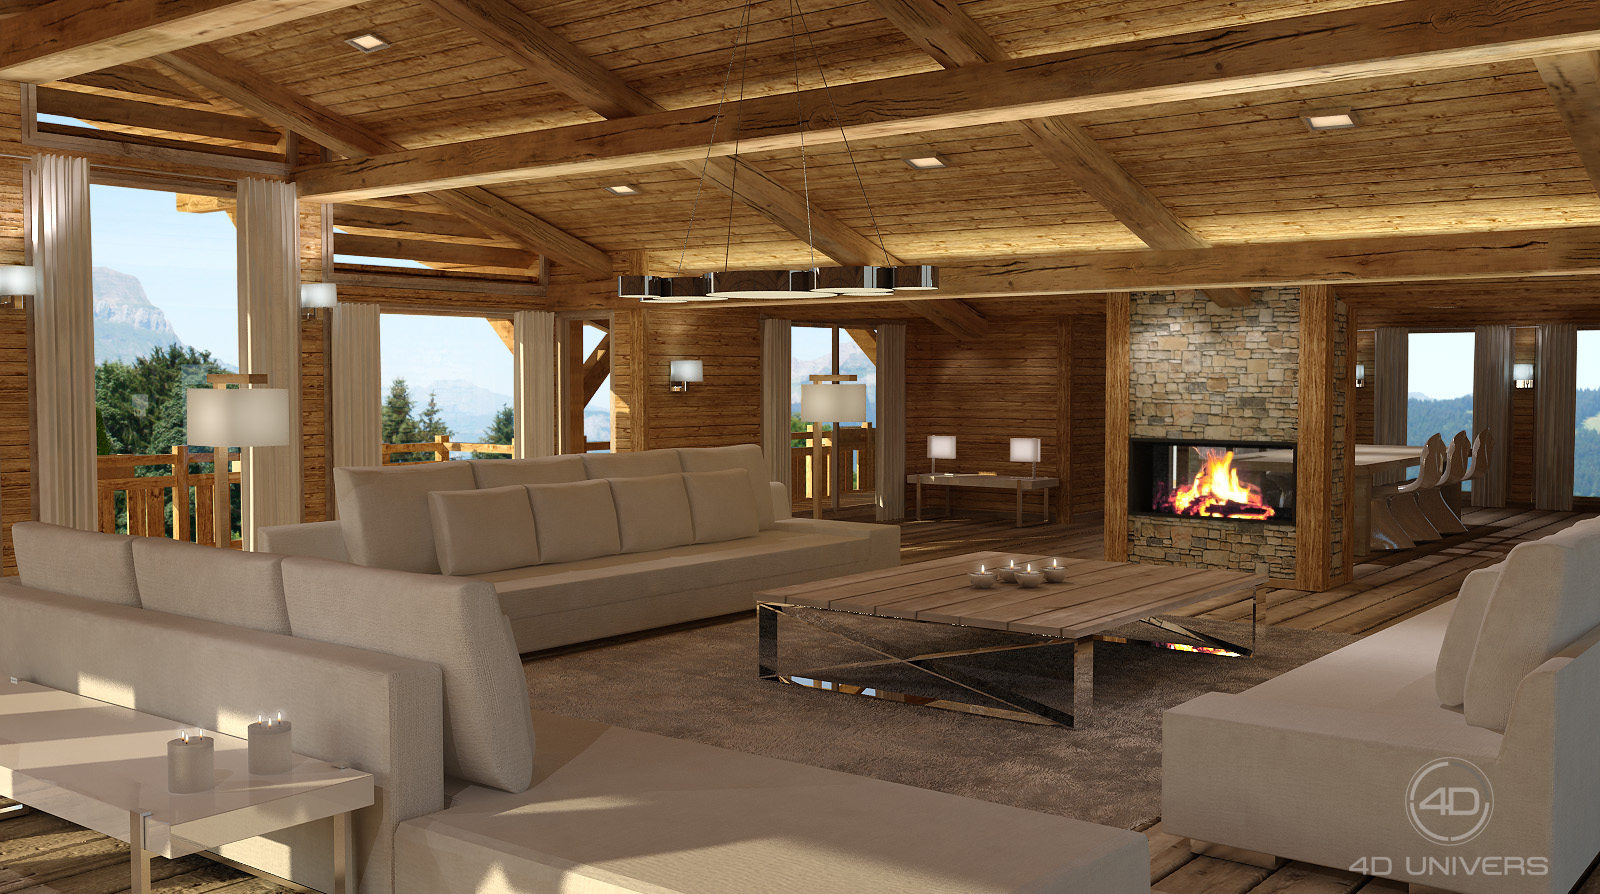 Chalet meg ve 4d univers studio animation 3d for Decoration de chalet